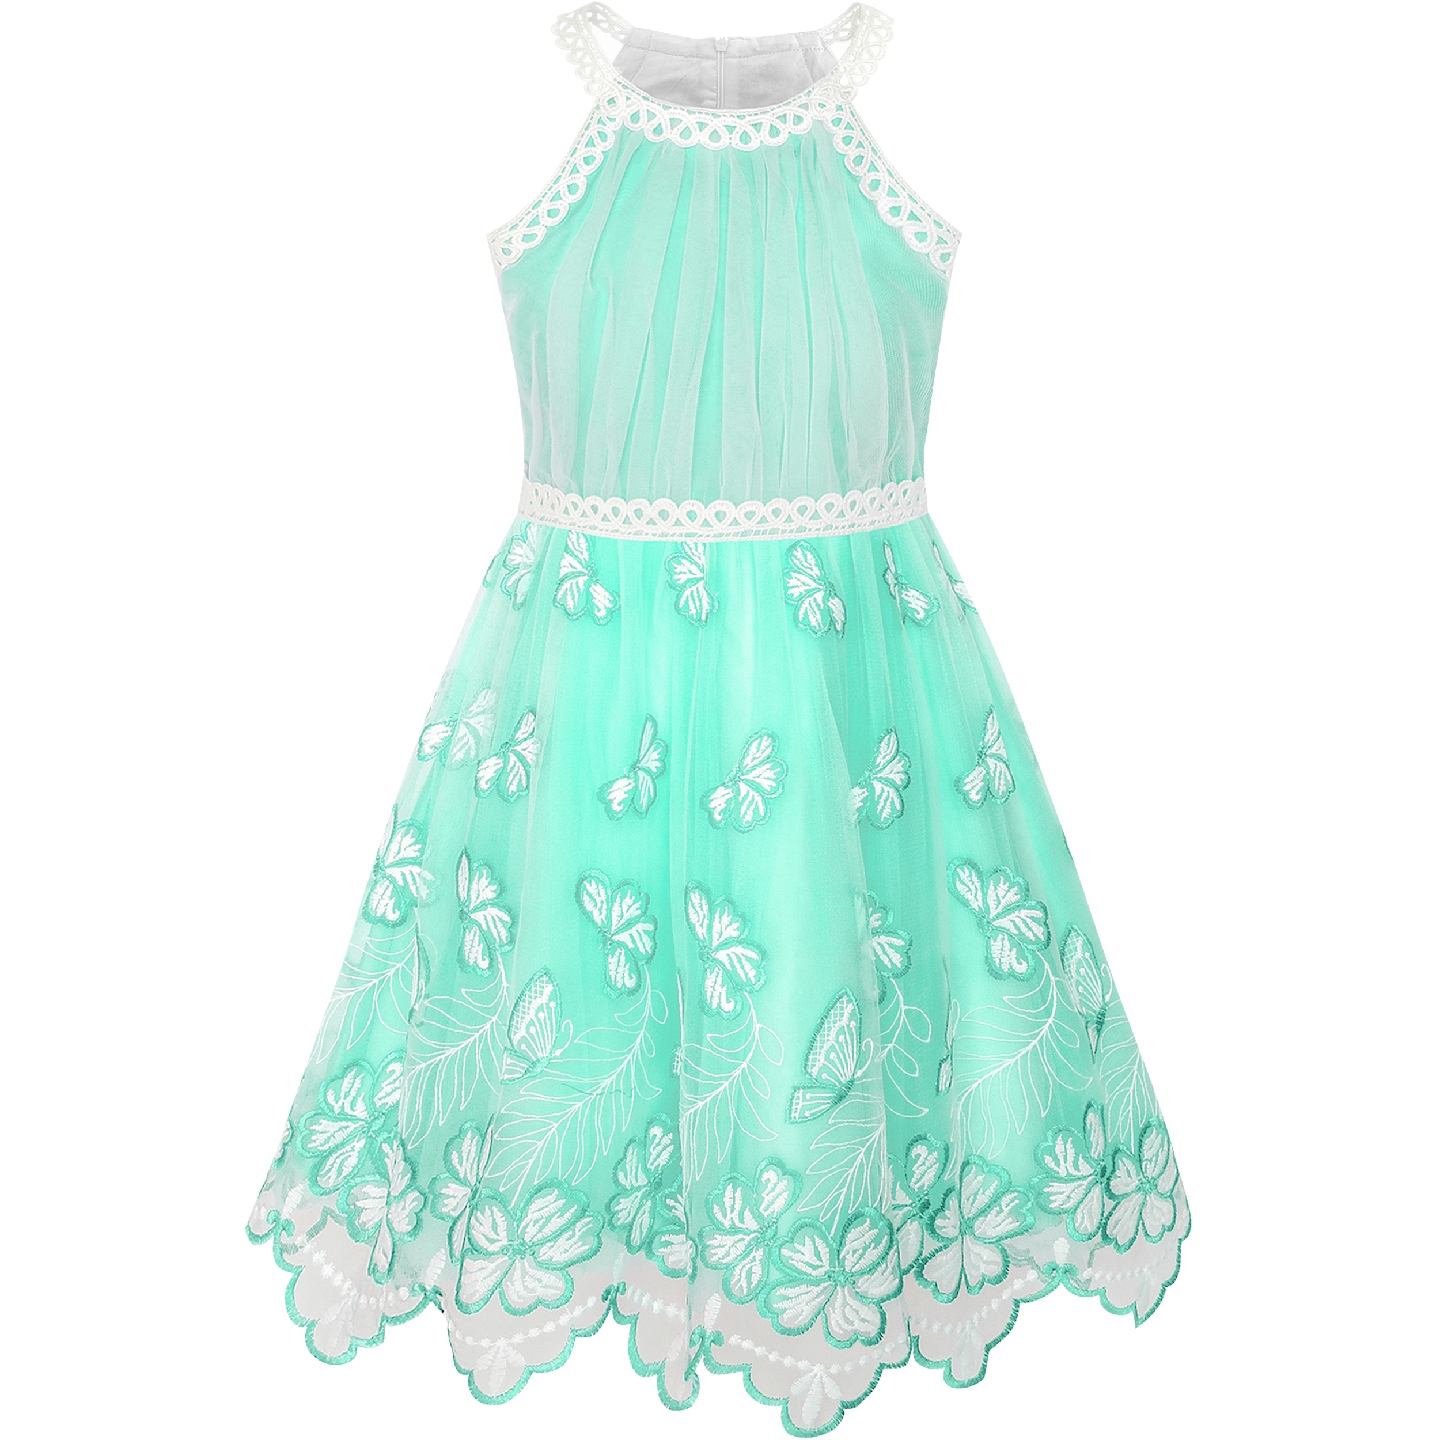 Girls Dress Turquoise Butterfly Embroidered Halter Dress Party 2019 Summer Princess Wedding Dresses Children Clothes Pageant flower girls dress embroidered sequin wedding pageant bridesmaid 2017 summer princess party dresses kids clothes size 7 14